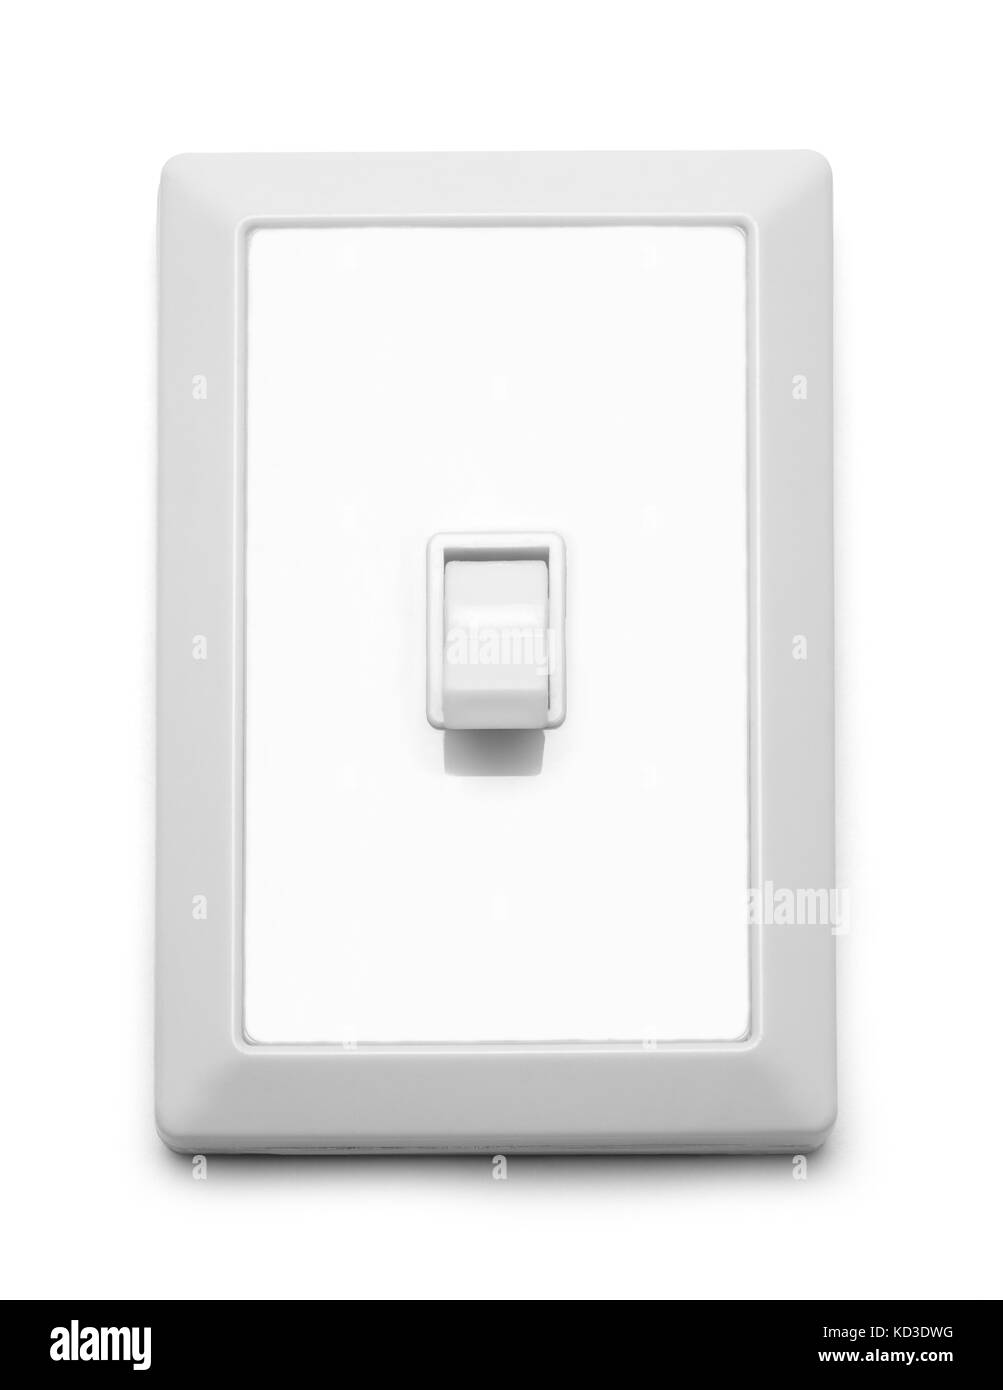 Wall Light Switch Off Isolated On White Background. - Stock Image